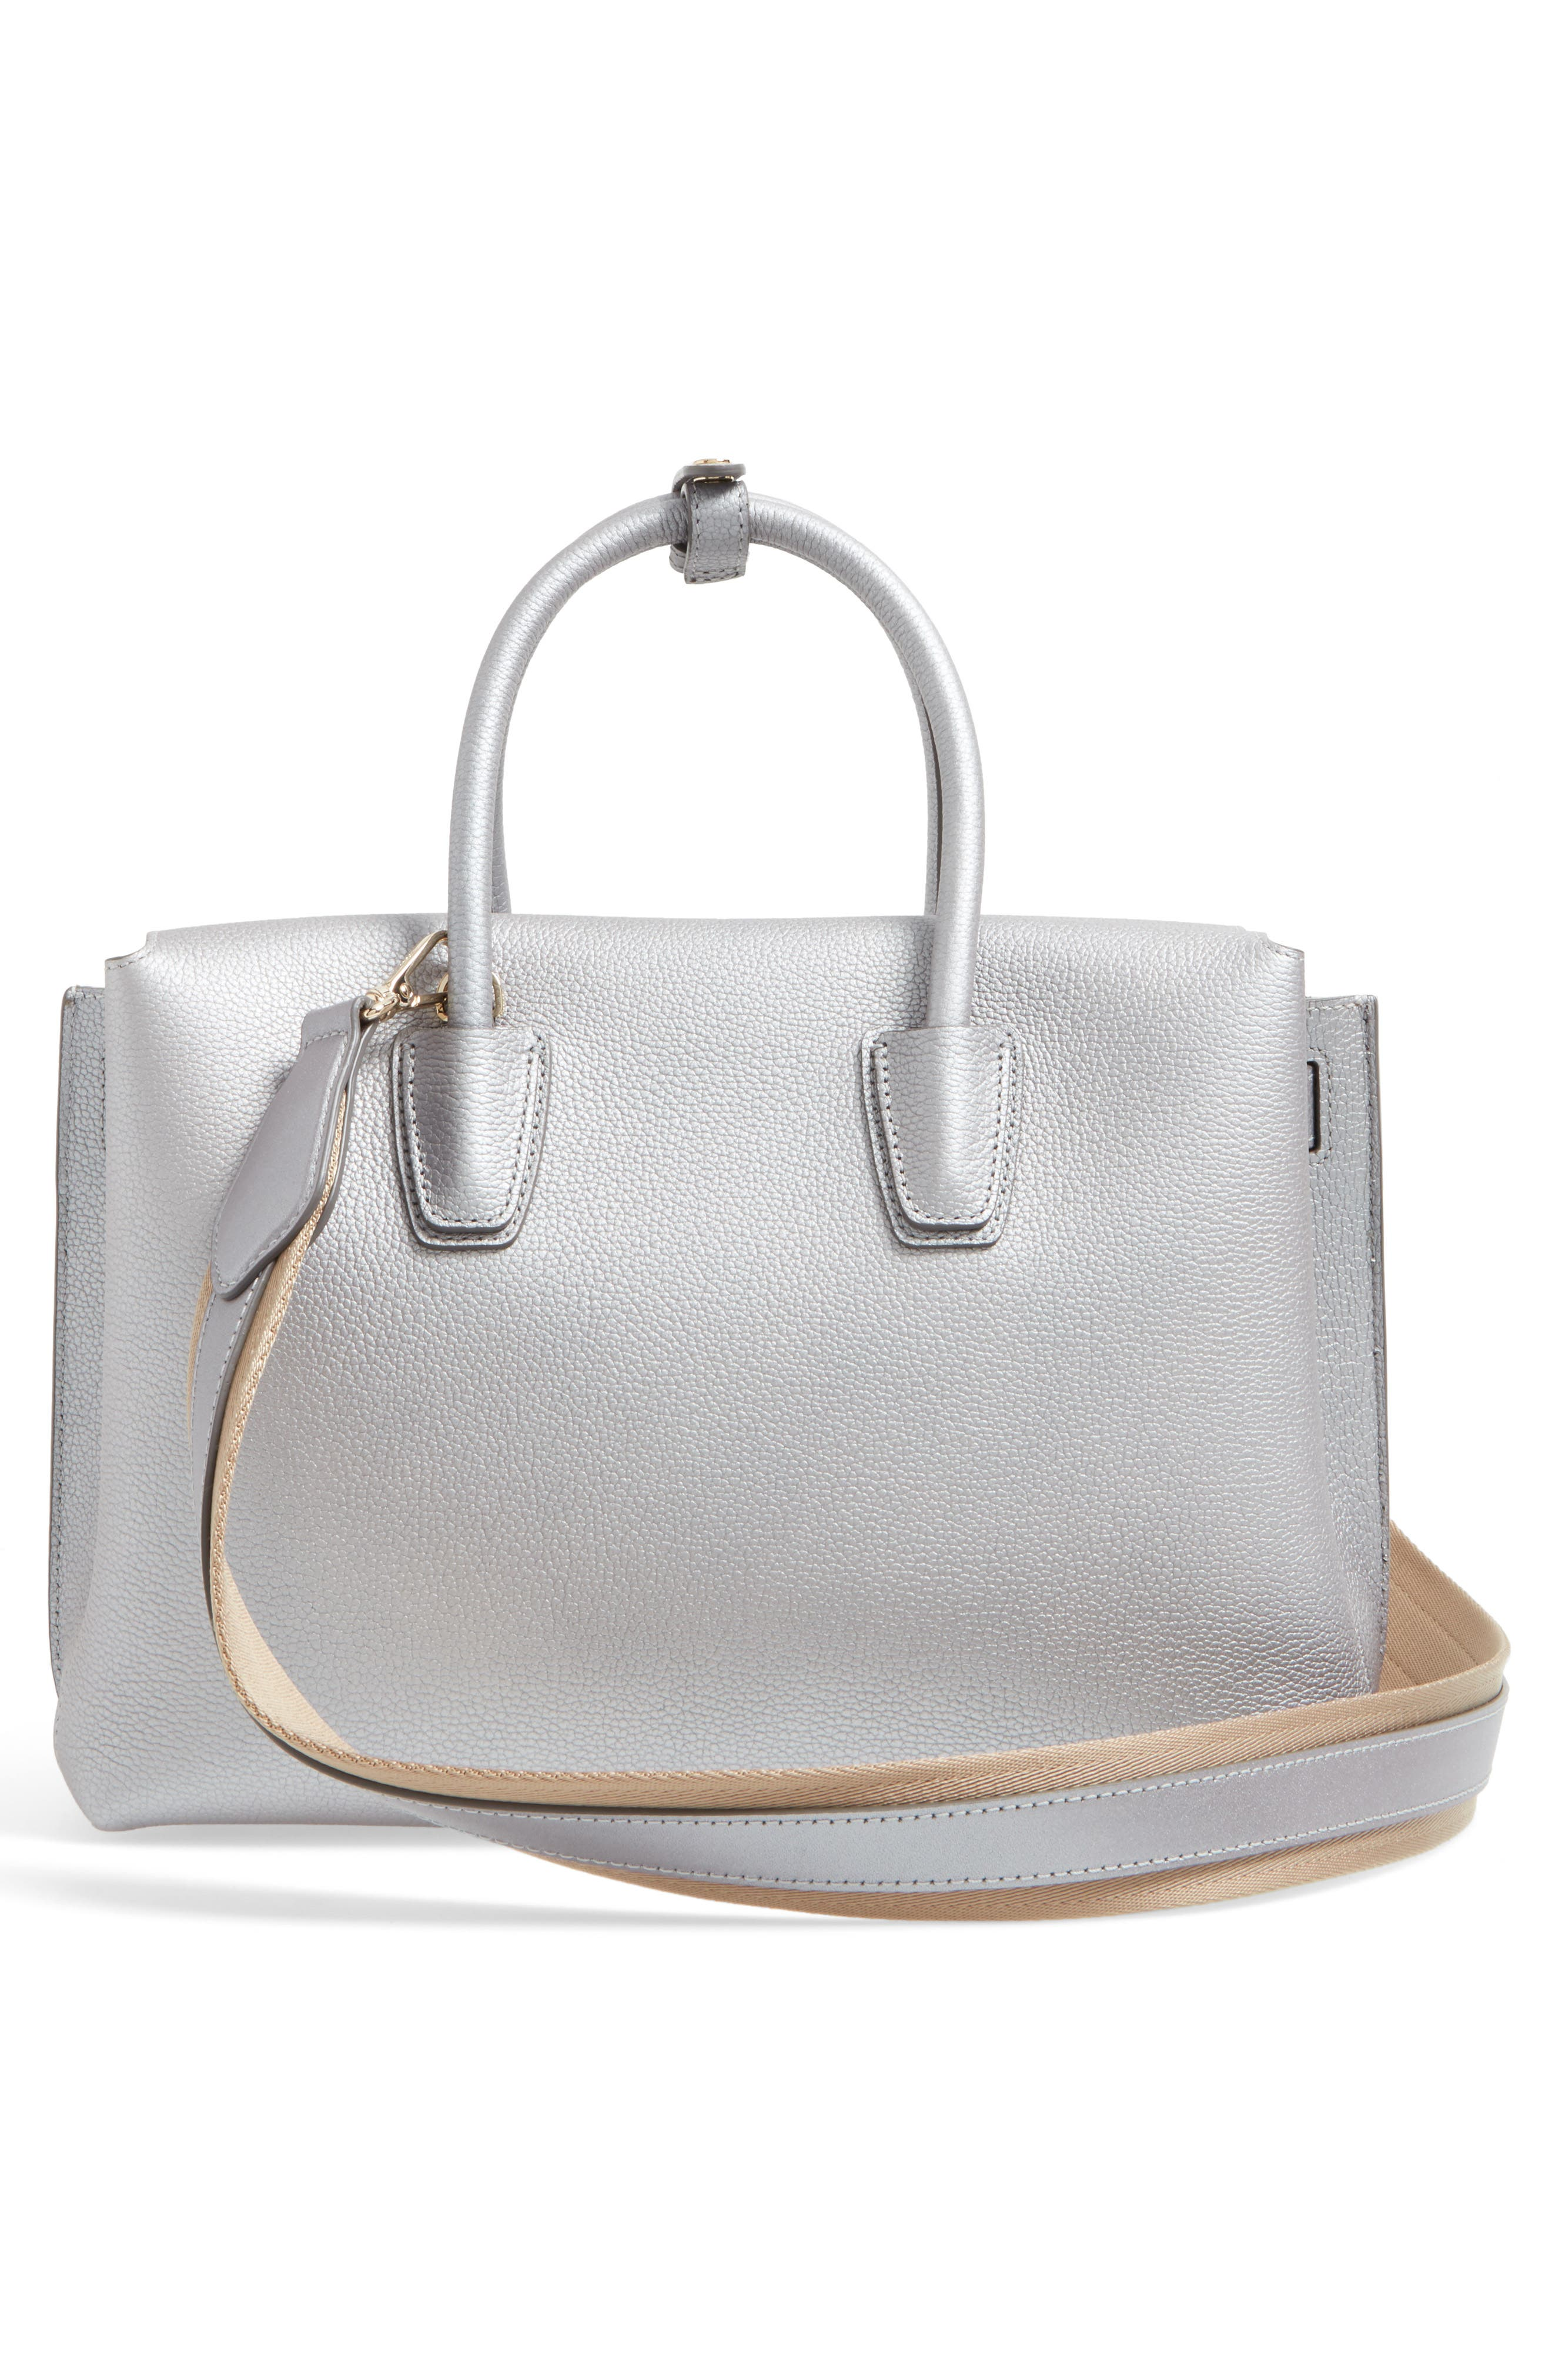 Medium Milla Leather Tote,                             Alternate thumbnail 3, color,                             045